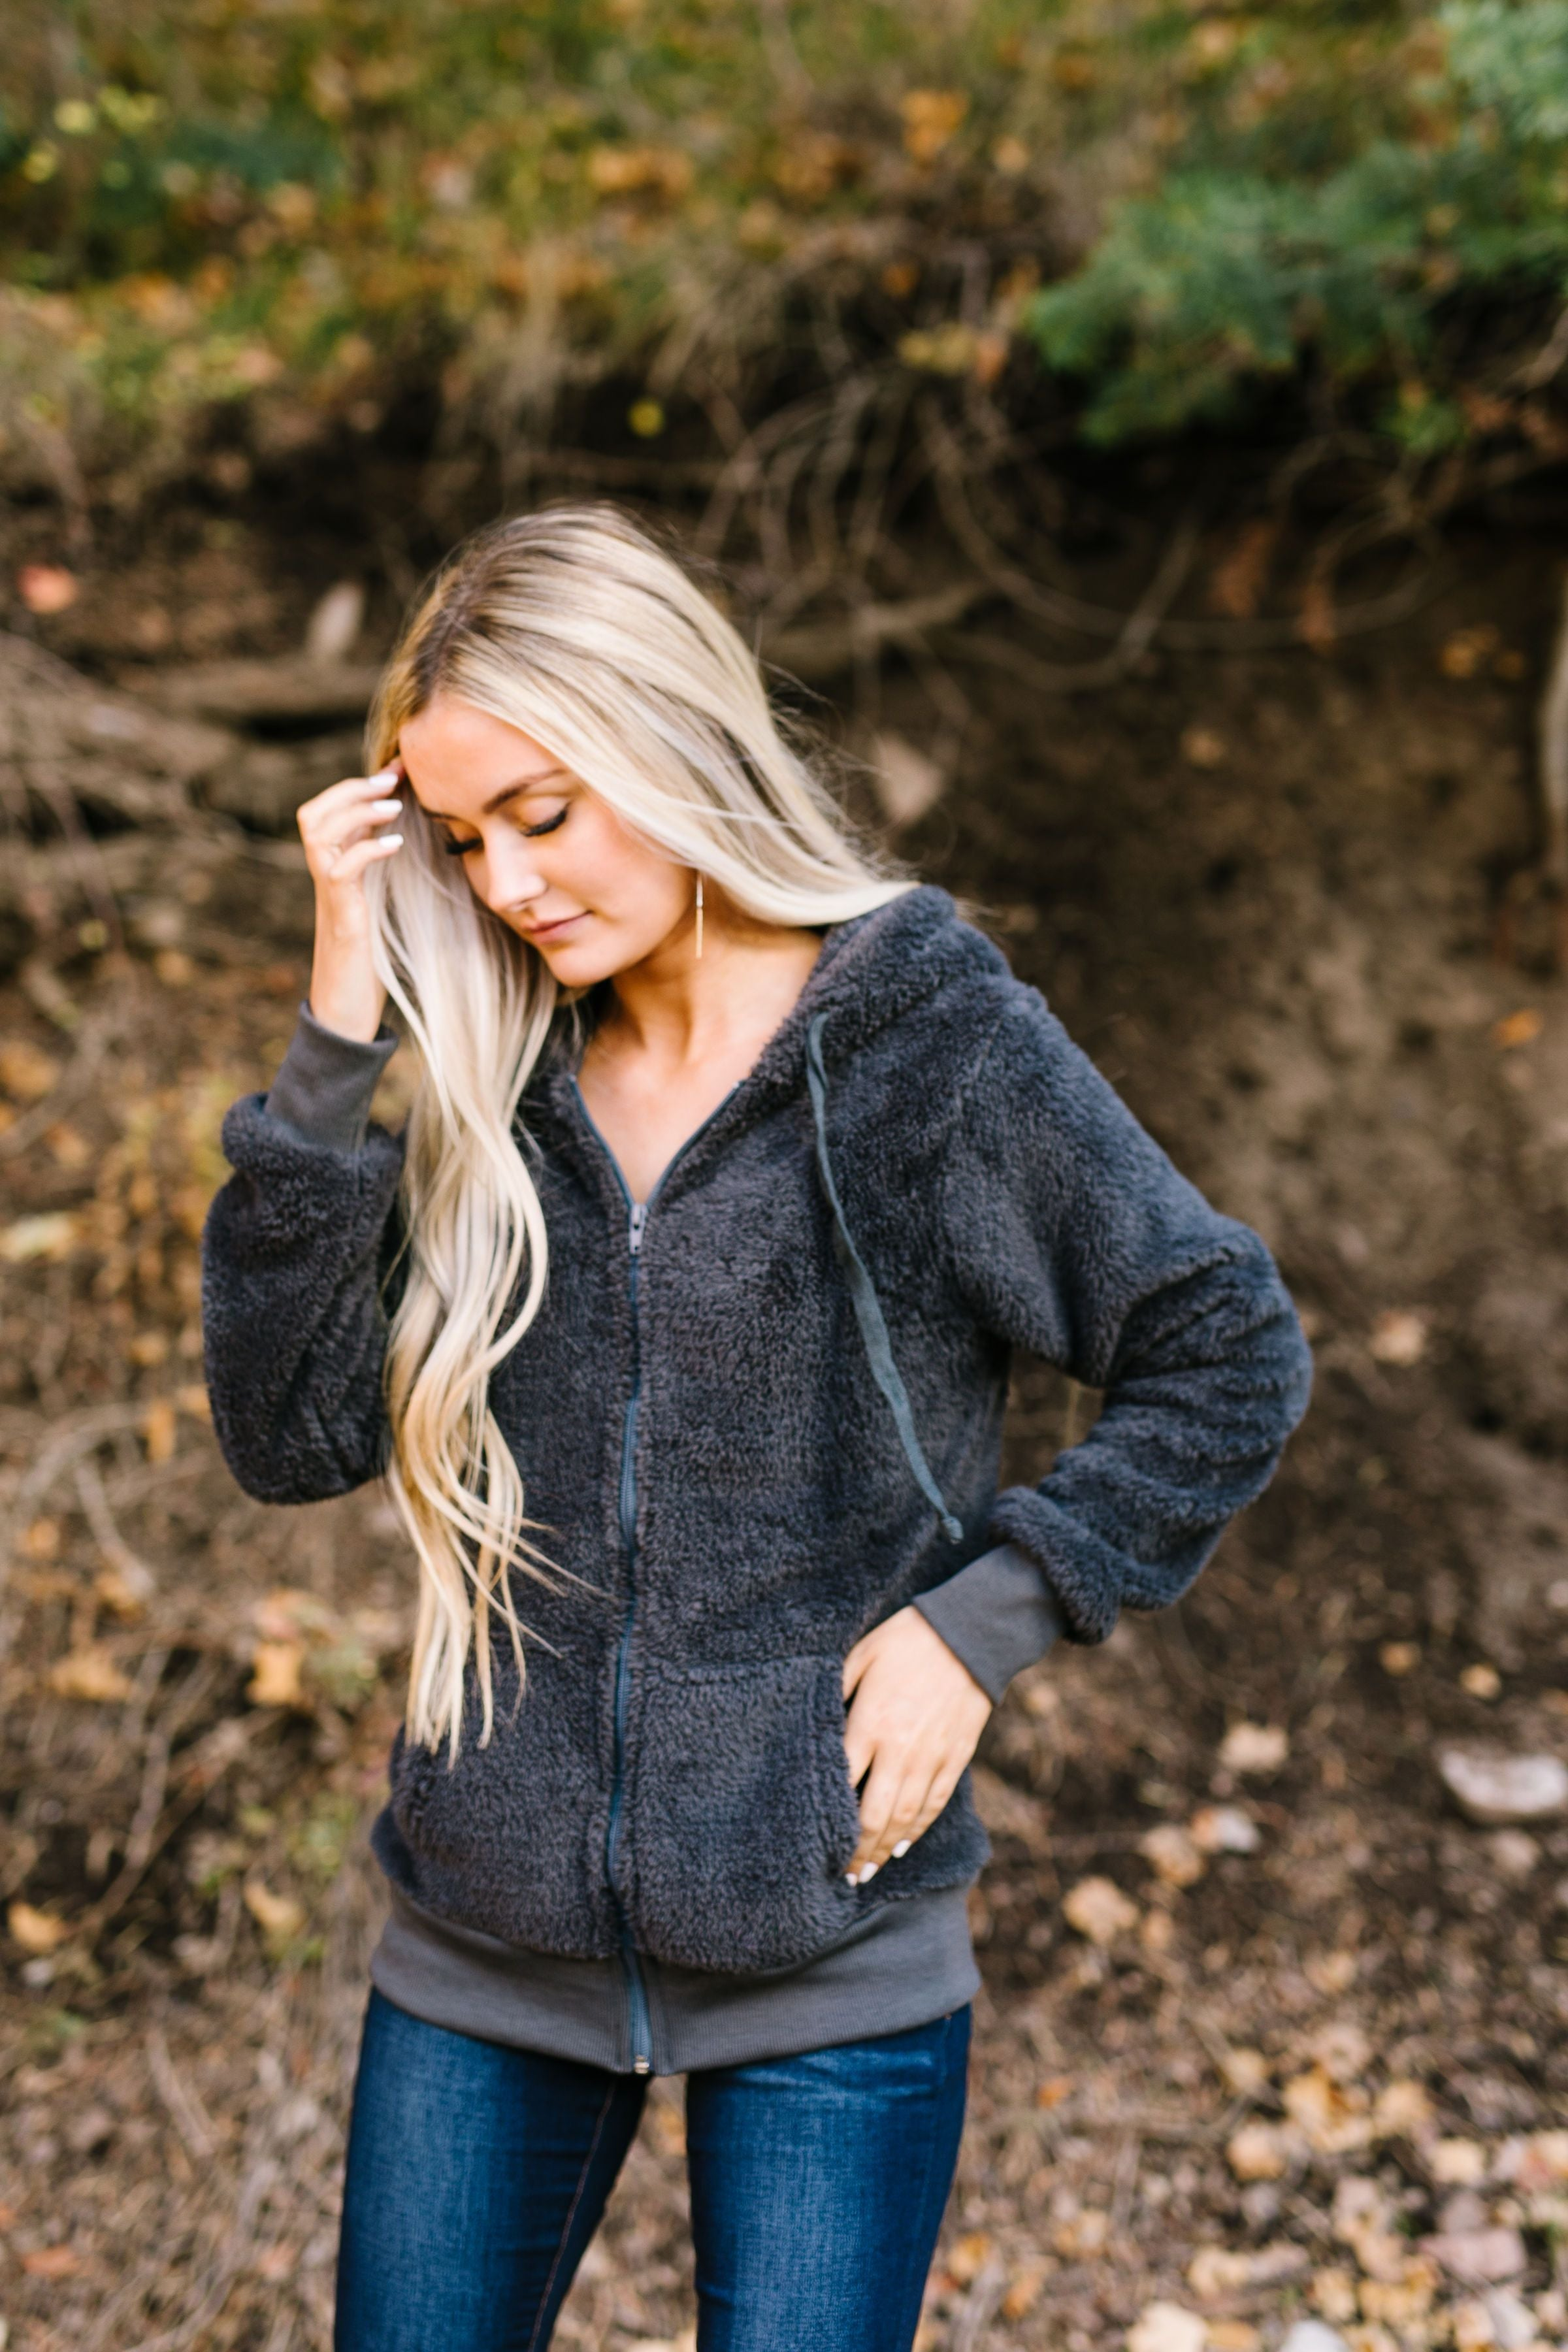 Furry Zip Up Hoodie In Charcoal - ALL SALES FINAL